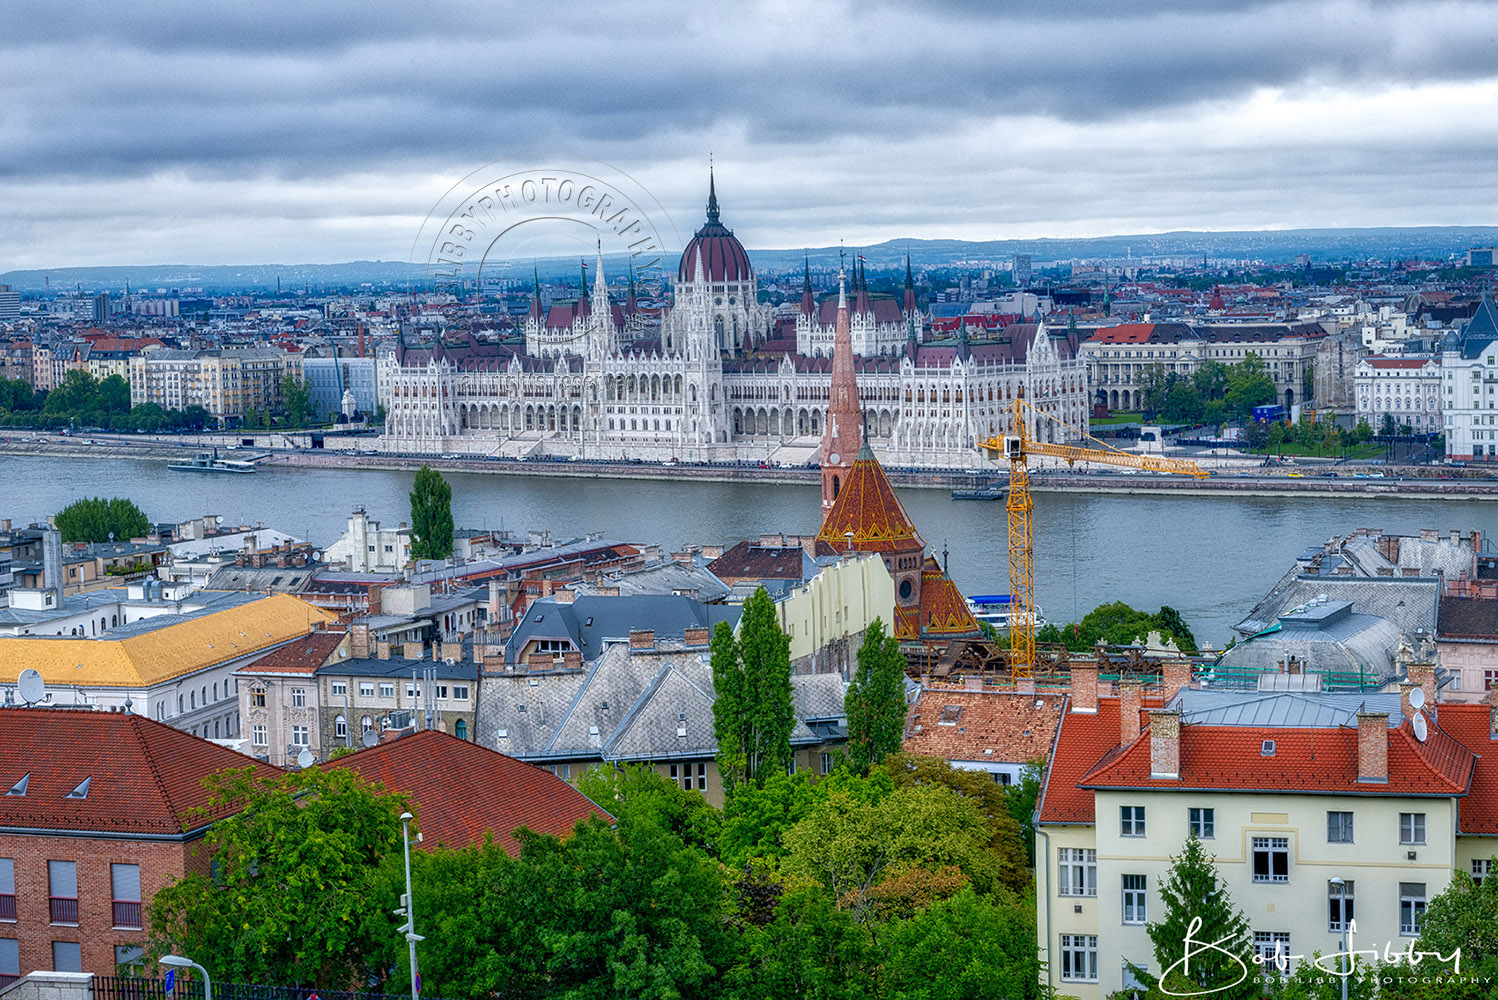 Overlooking The City Of Budapest